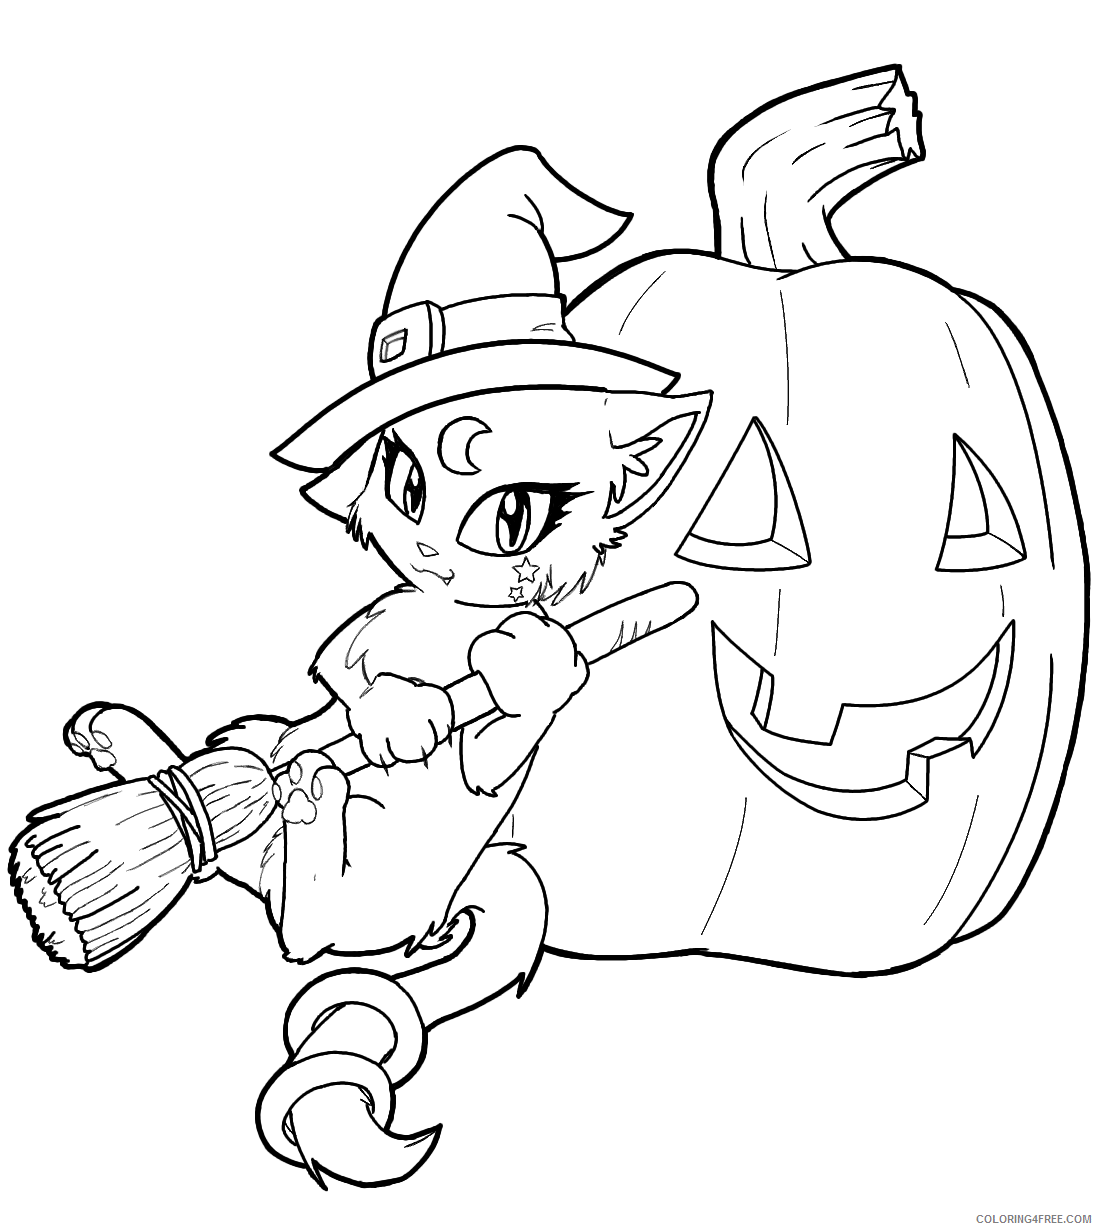 Witch Coloring Pages for Girls Free Witch Printable 2021 1395 Coloring4free